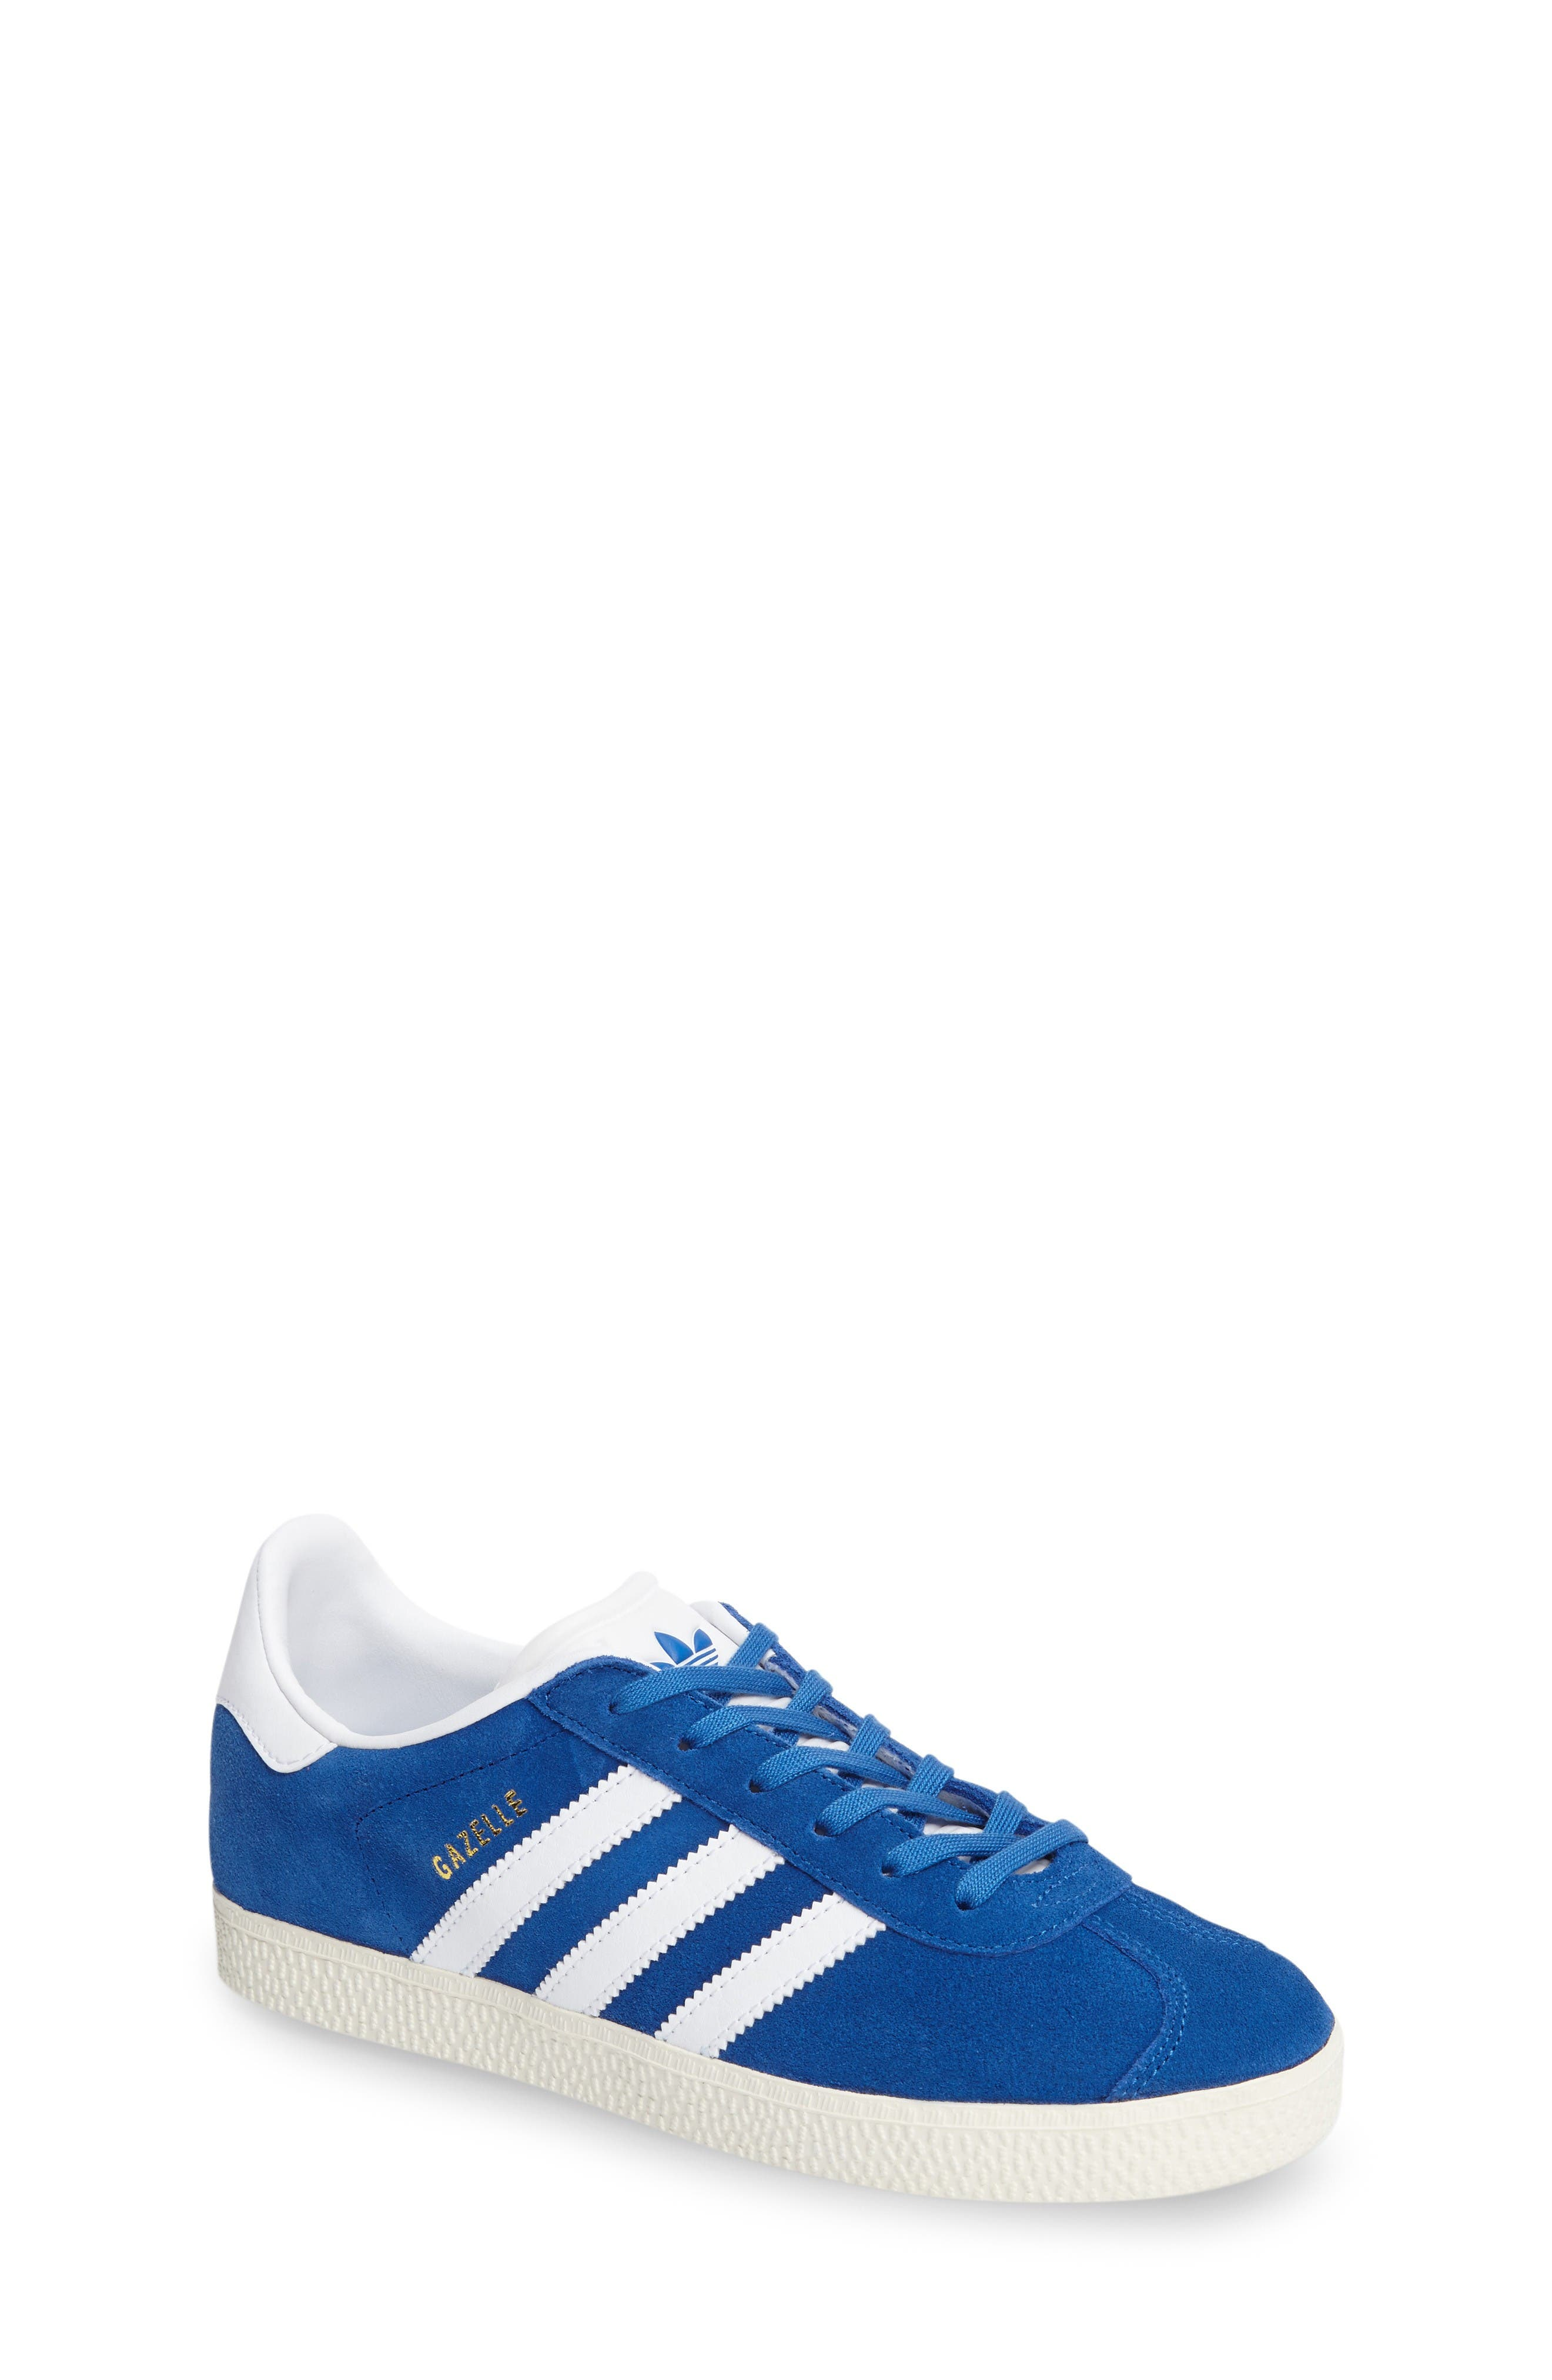 adidas Gazelle Sneaker (Toddler, Little Kid & Big Kid)